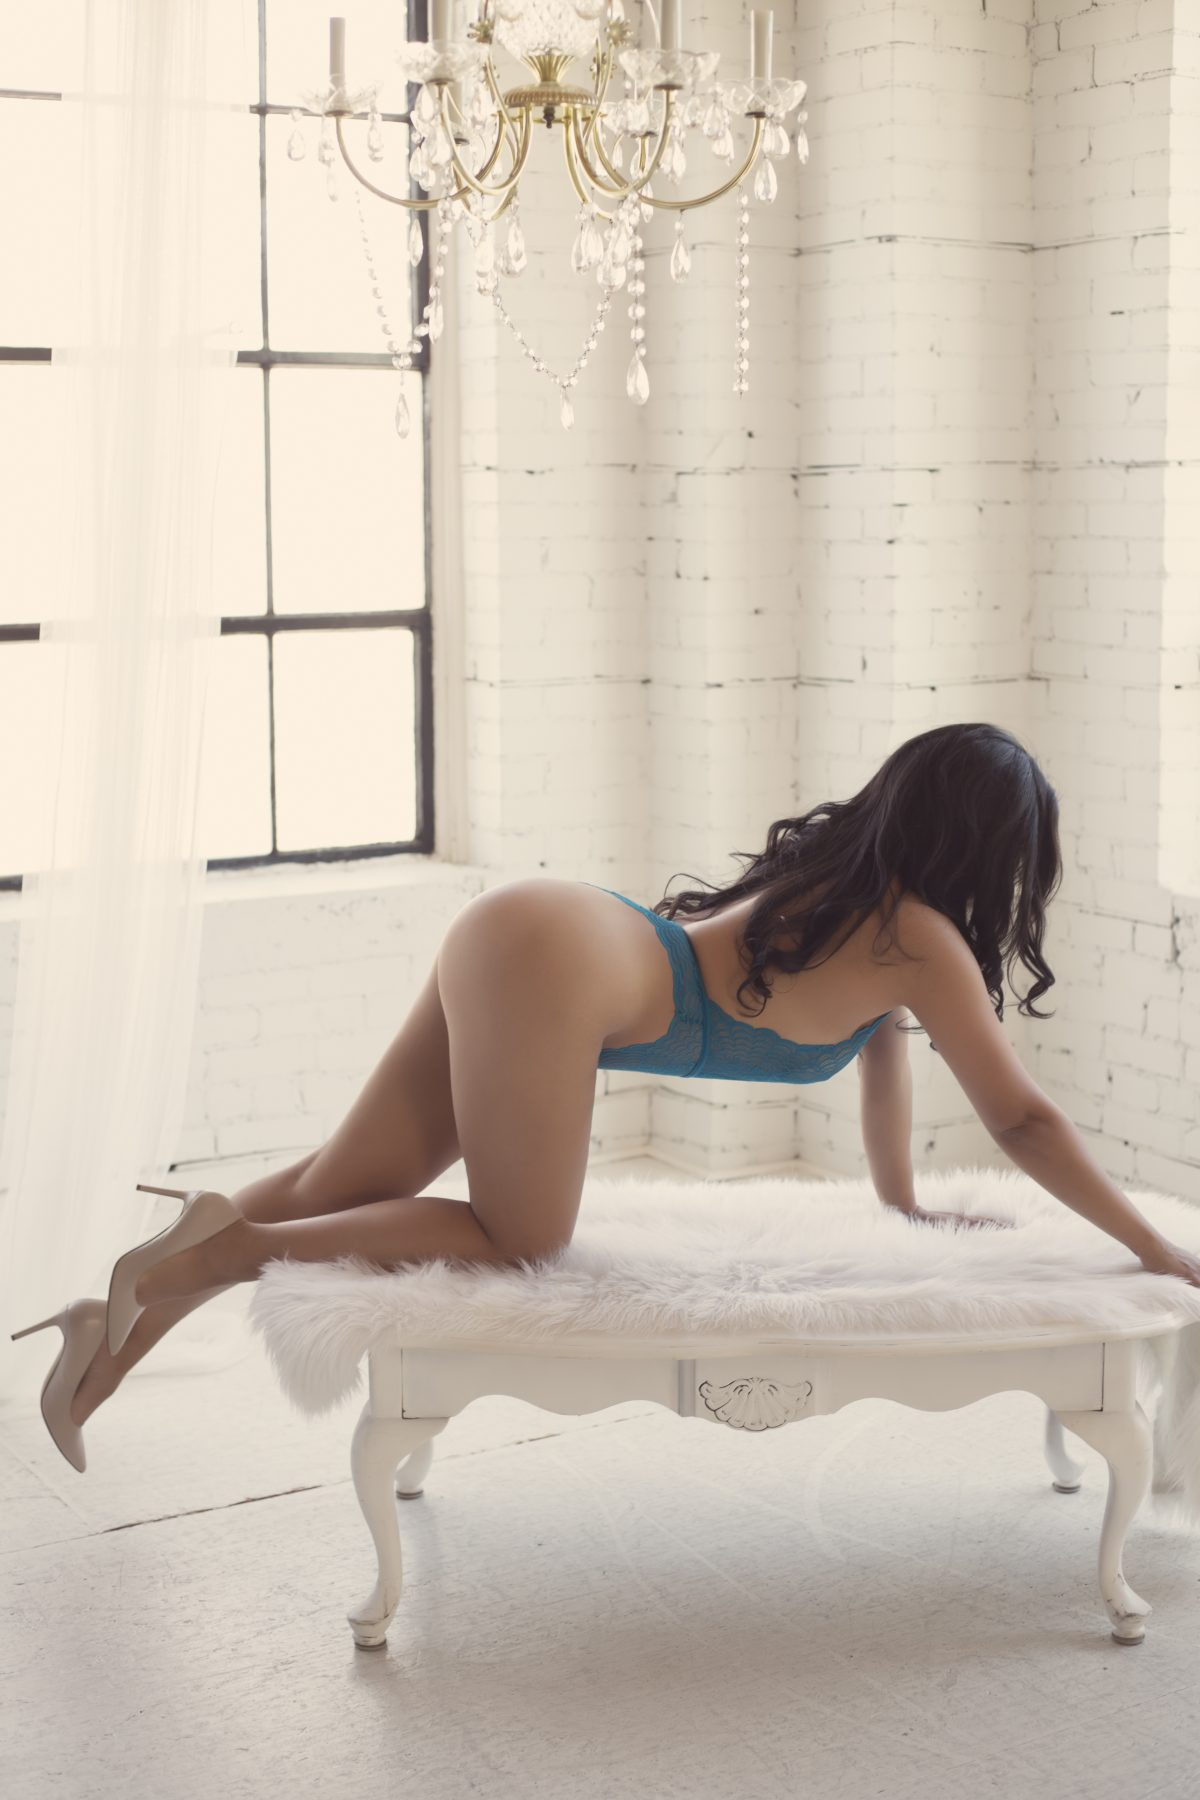 Toronto escorts companion upscale Rachel Duo Couple-friendly Disability-friendly Non-smoking Young Curvy Breasts Natural Brunette Exotic Tattoos None